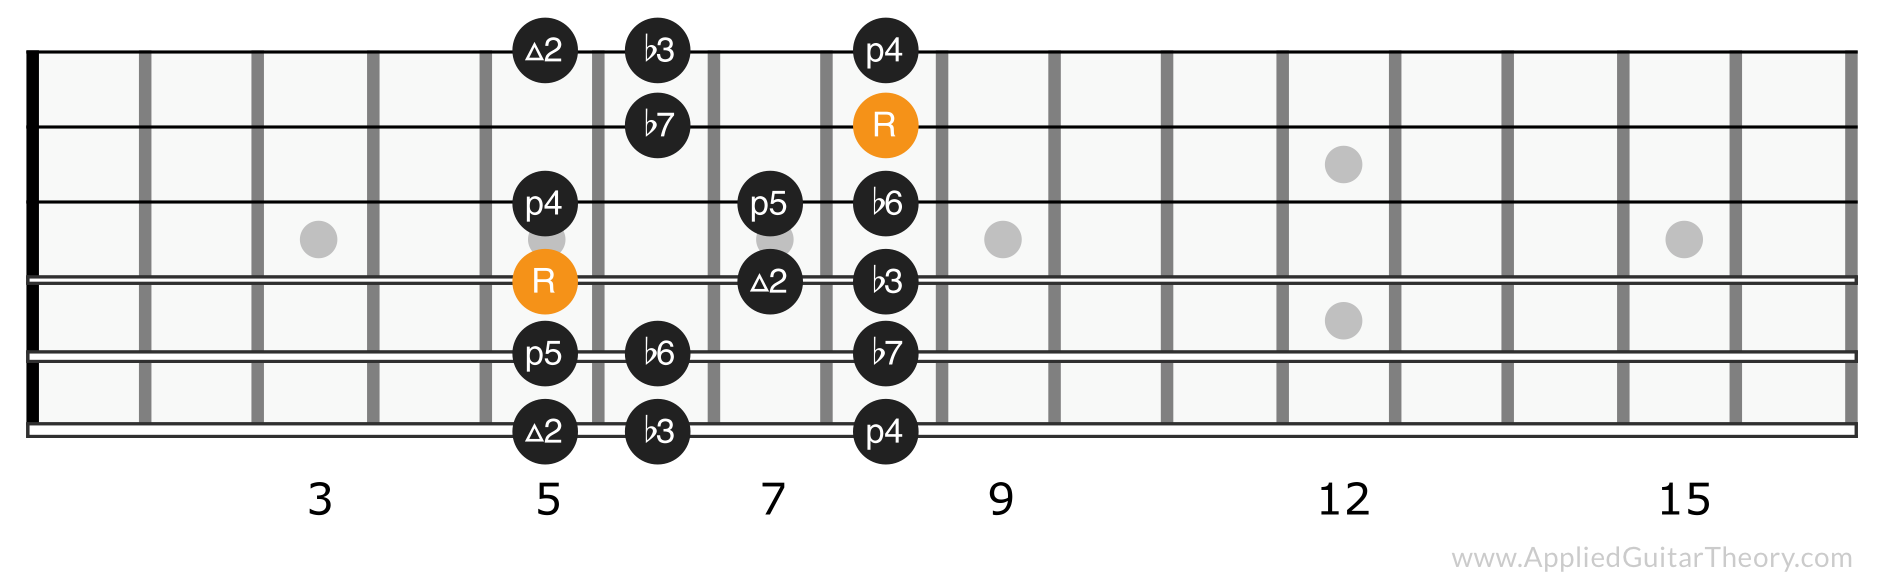 Minor scale position 2